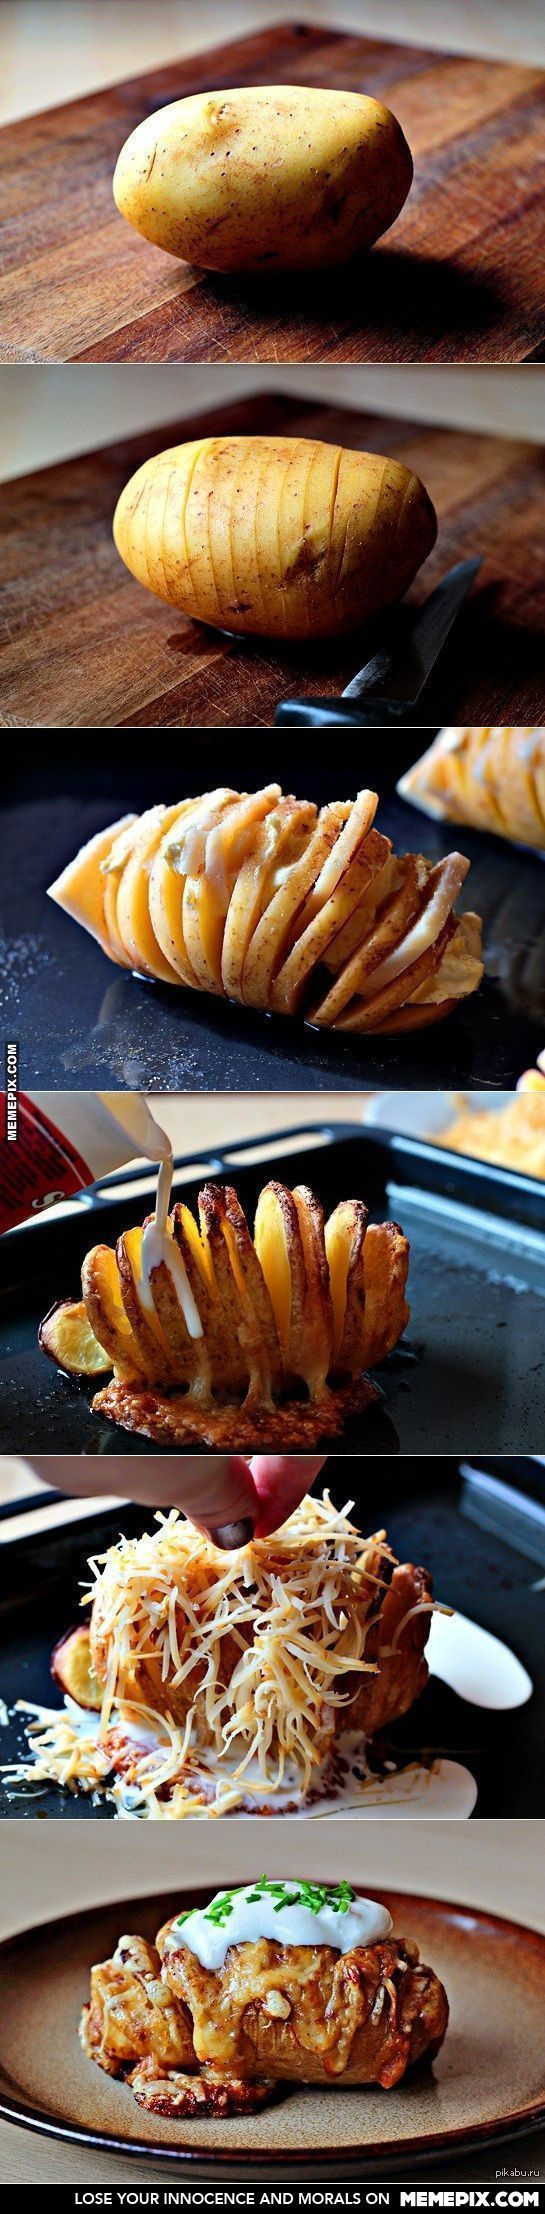 How to make... -rinse and scrub potatoes -cut into thin slices (not all the way through), -put in baking dish and fan out slices -sprinkle with salt and drizzle with butter, sprinkle with herbs -bake at 425 for about 50 minutes -remove from oven and sprinkle with cheeses (whatever you want) -bake for another 10-15 minutes until cheese are melted and potatoes are soft inside